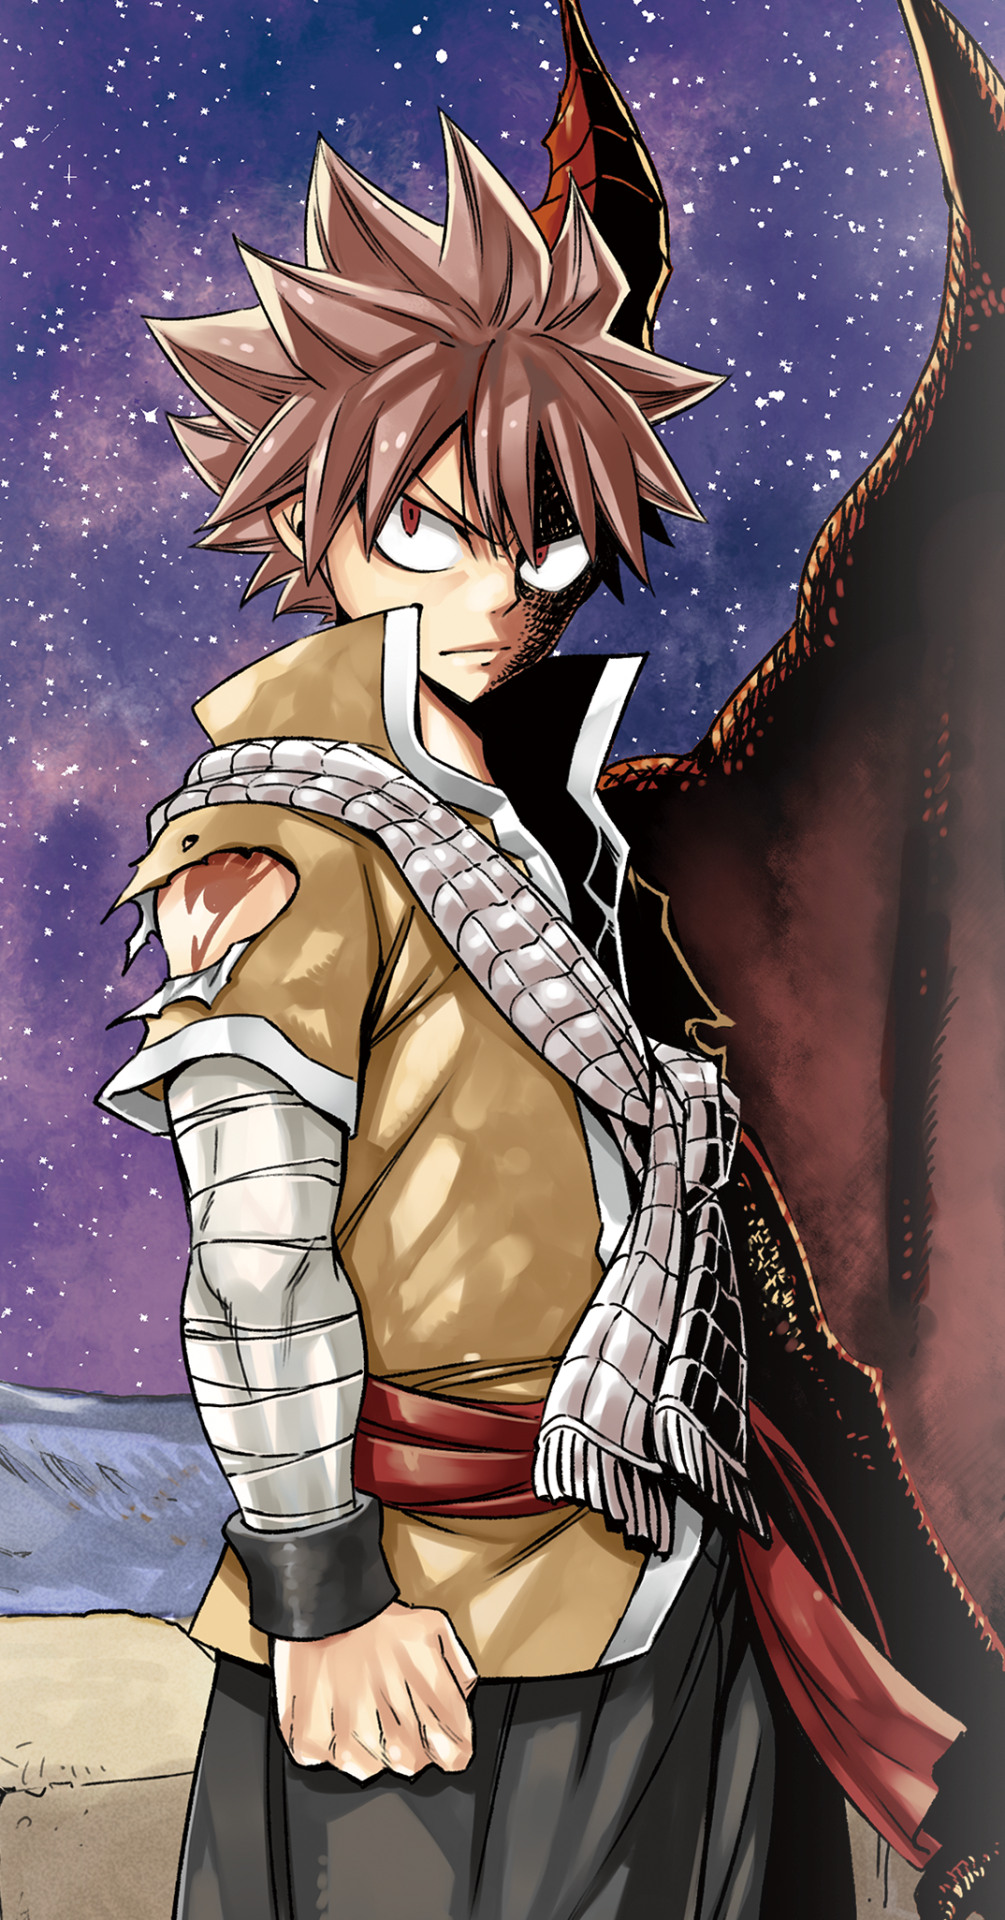 Natsu Dragneel In Dragon Cry The Second Fairy Tail Movie With